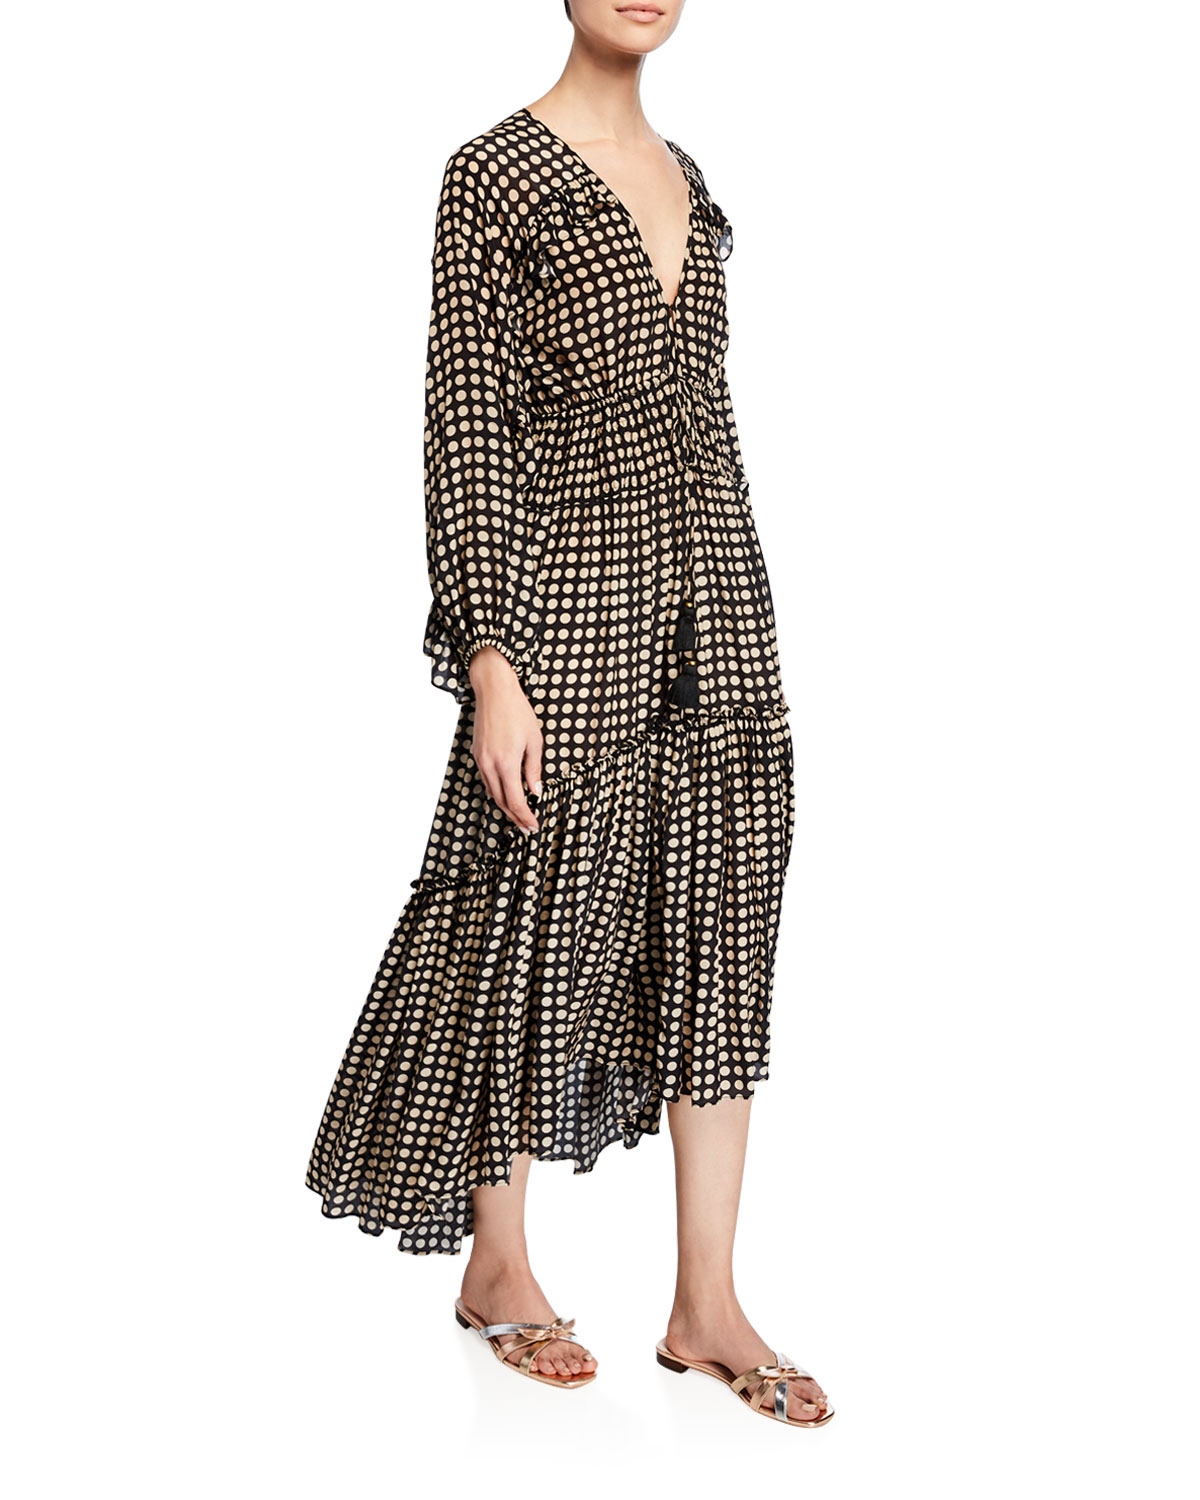 Figue Dresses ALESSIA MOON-DOTTED LONG-SLEEVE DRESS